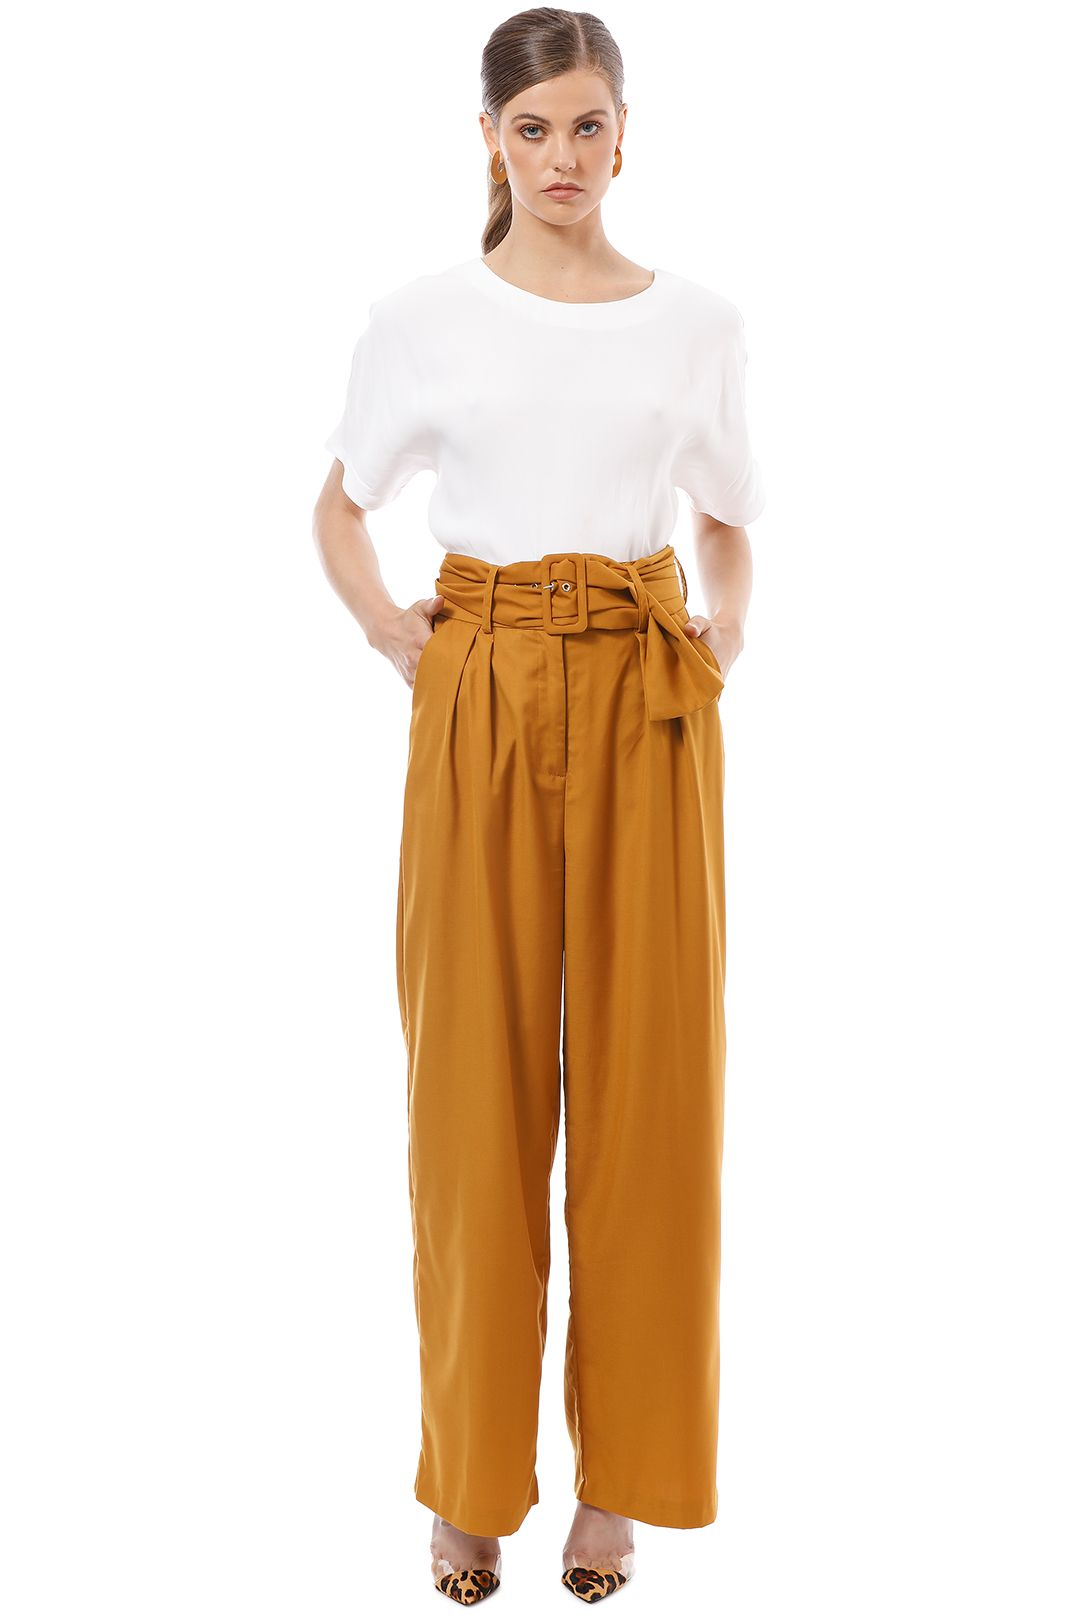 CMEO Collective - The Moments Pant - Yellow - Front